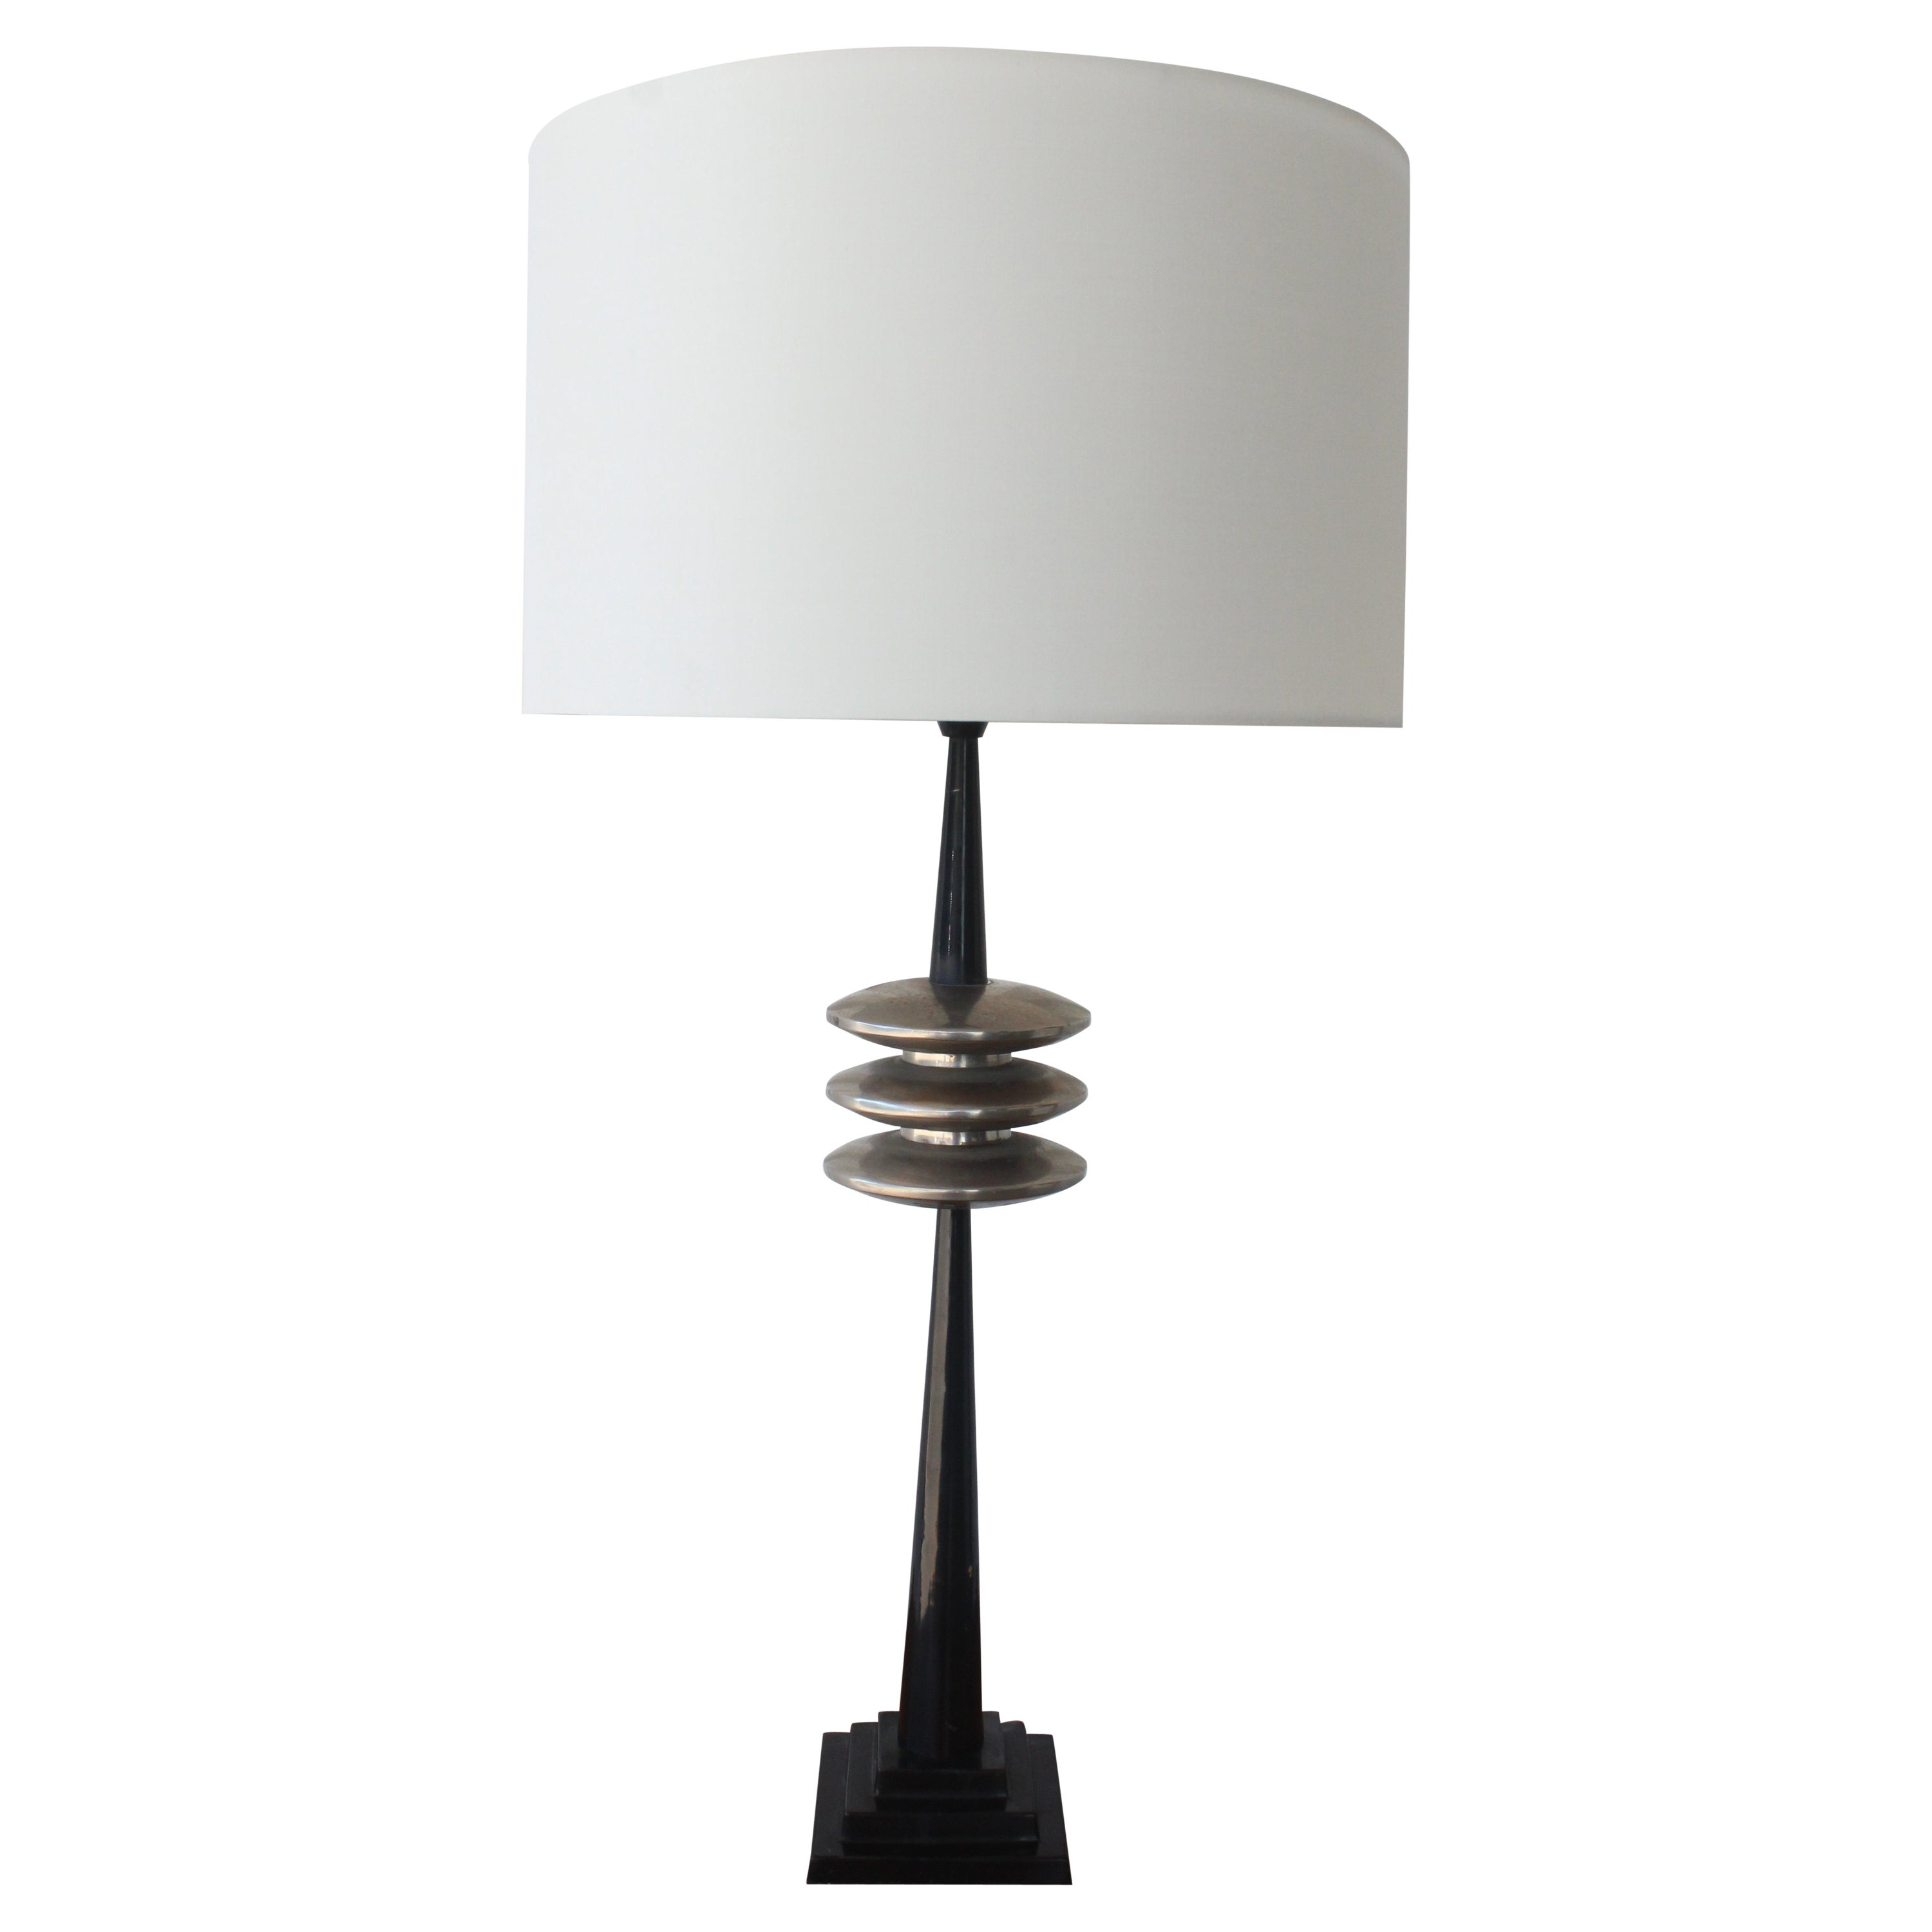 1930s Art Deco French Table Lamp